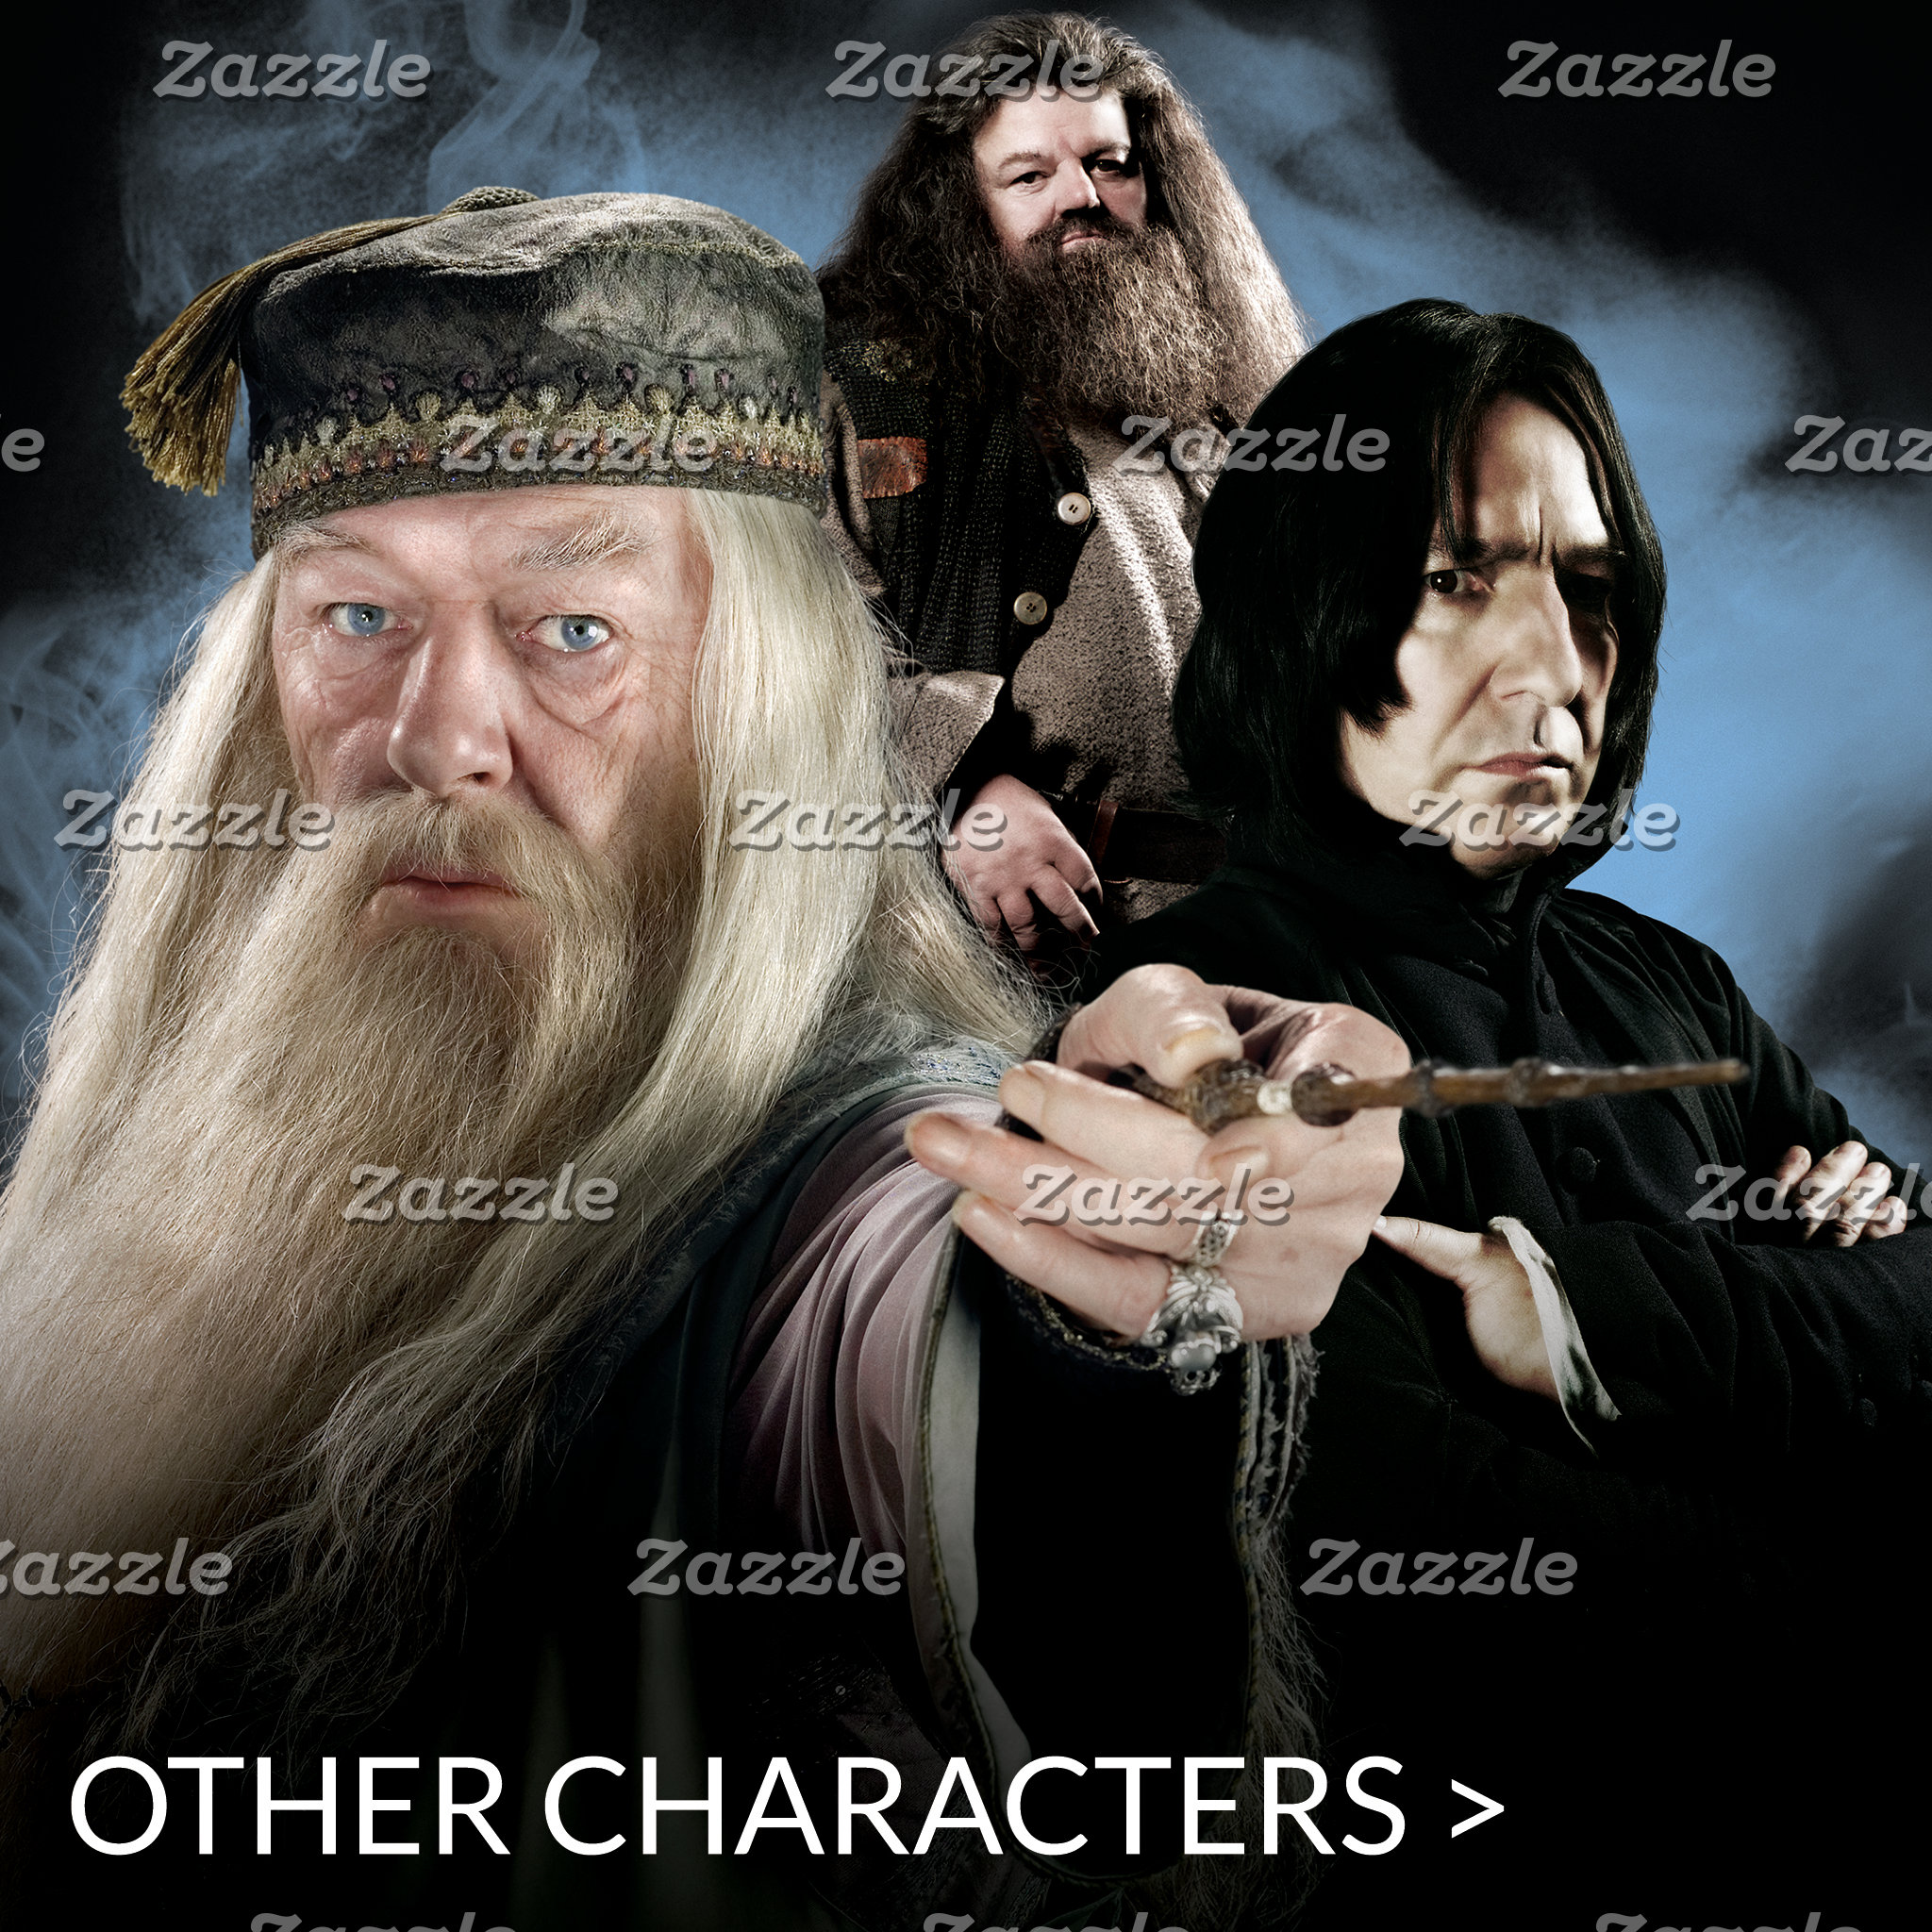 Other Characters